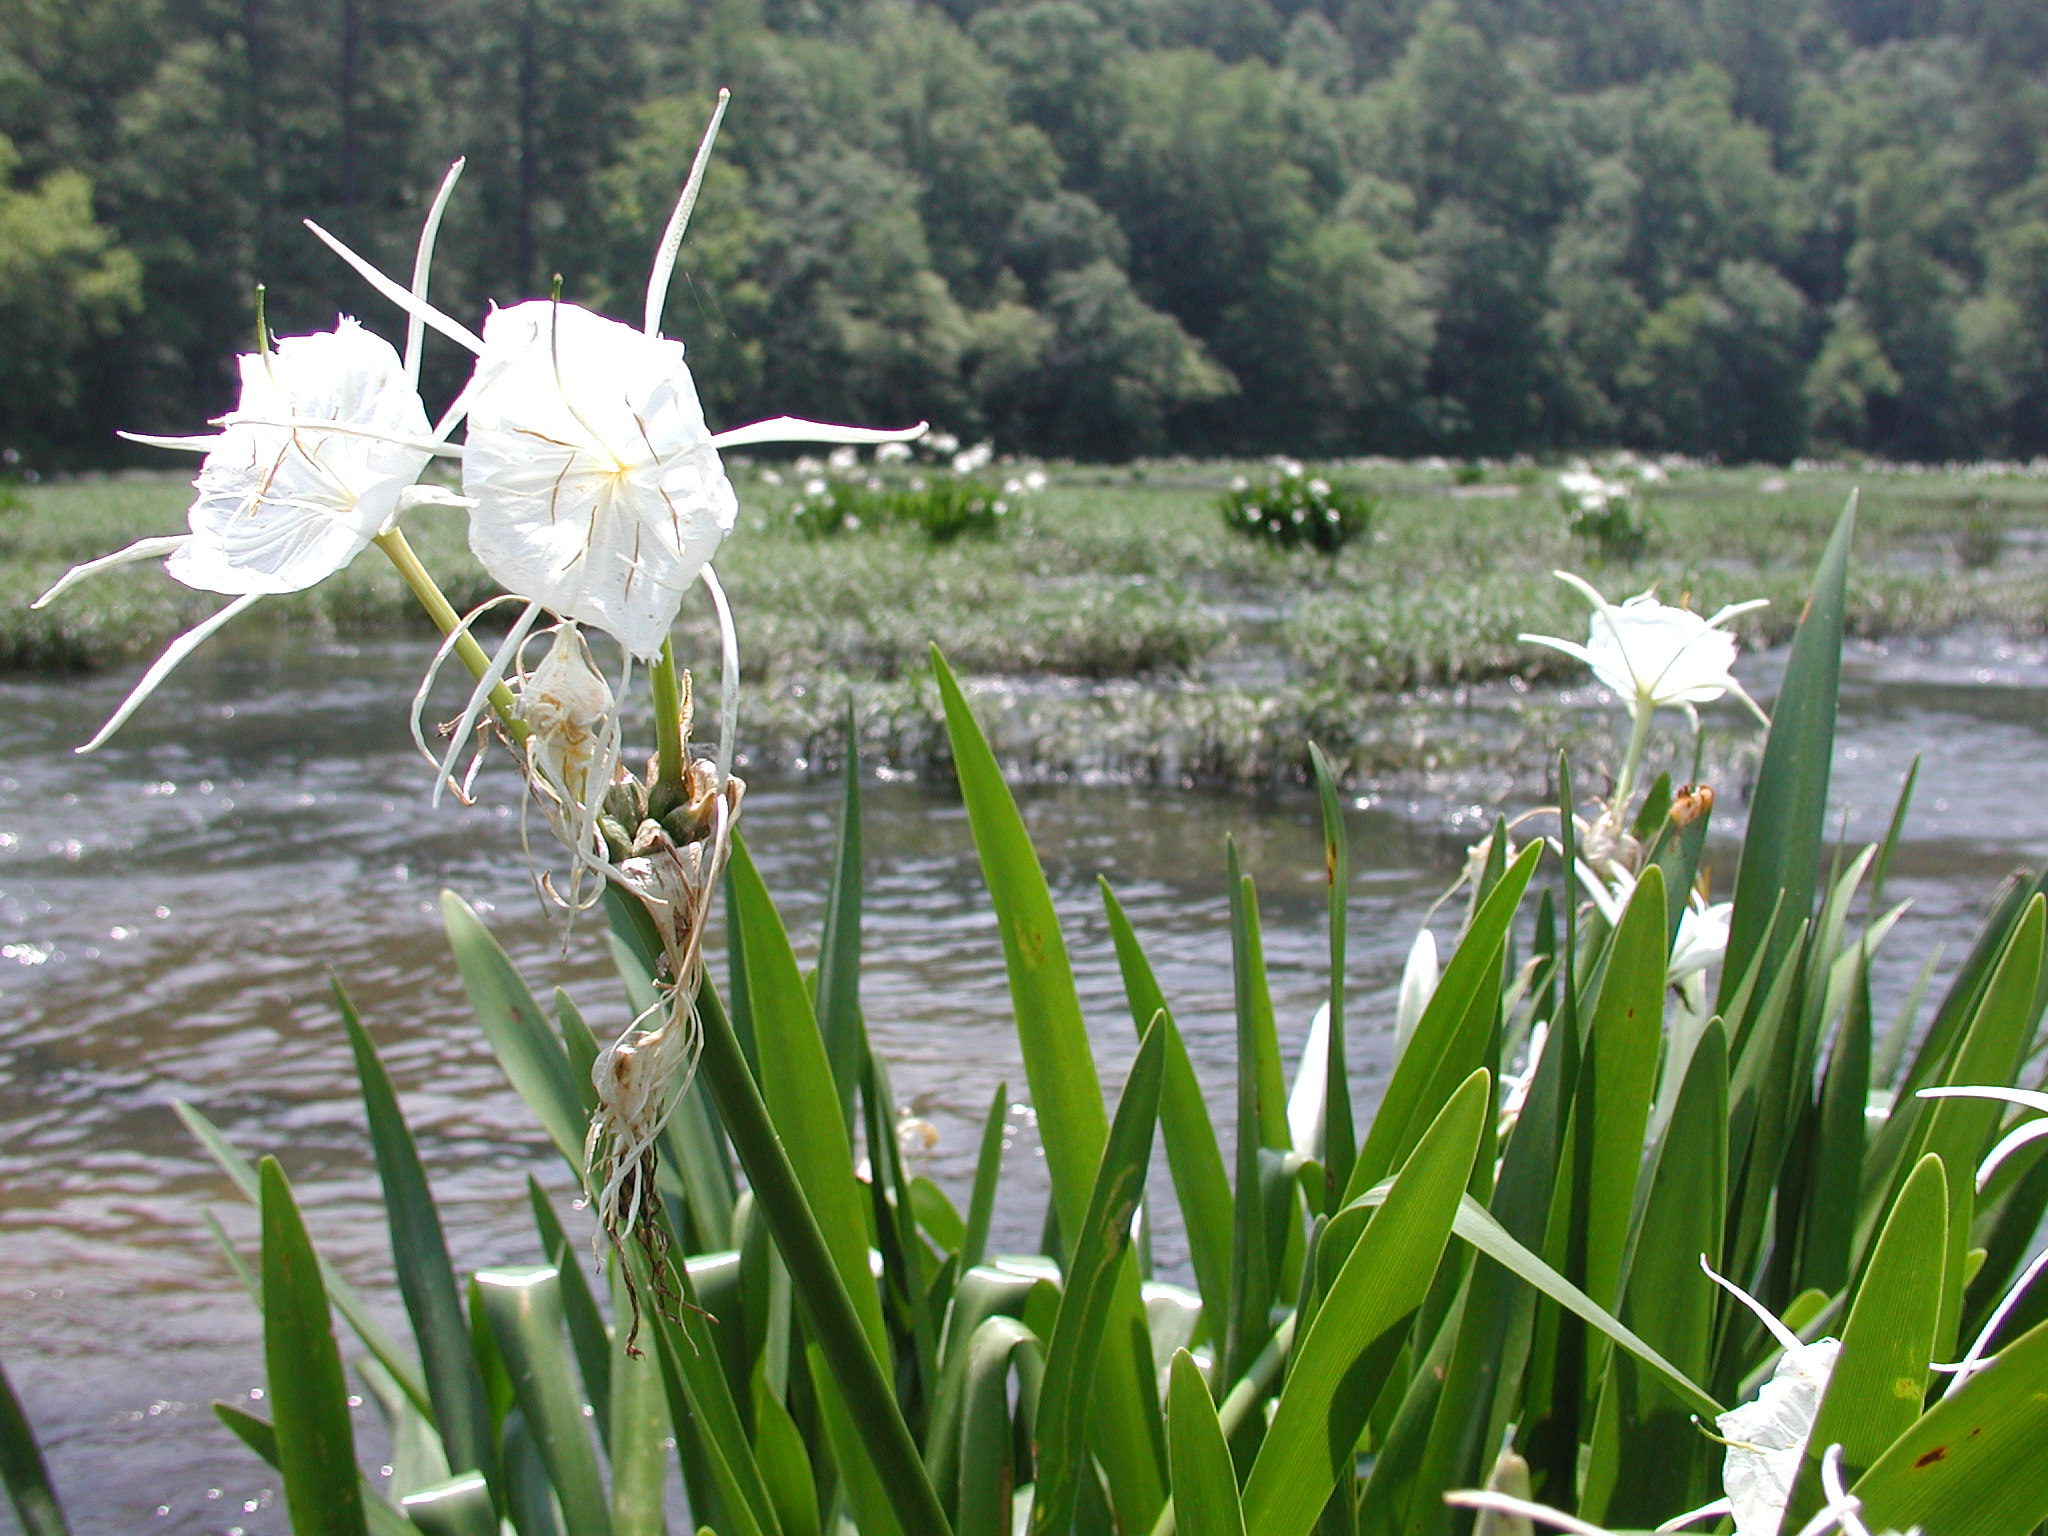 Cahaba Lillies in bloom. Image from Carmichael Library via Wikimedia Commons.